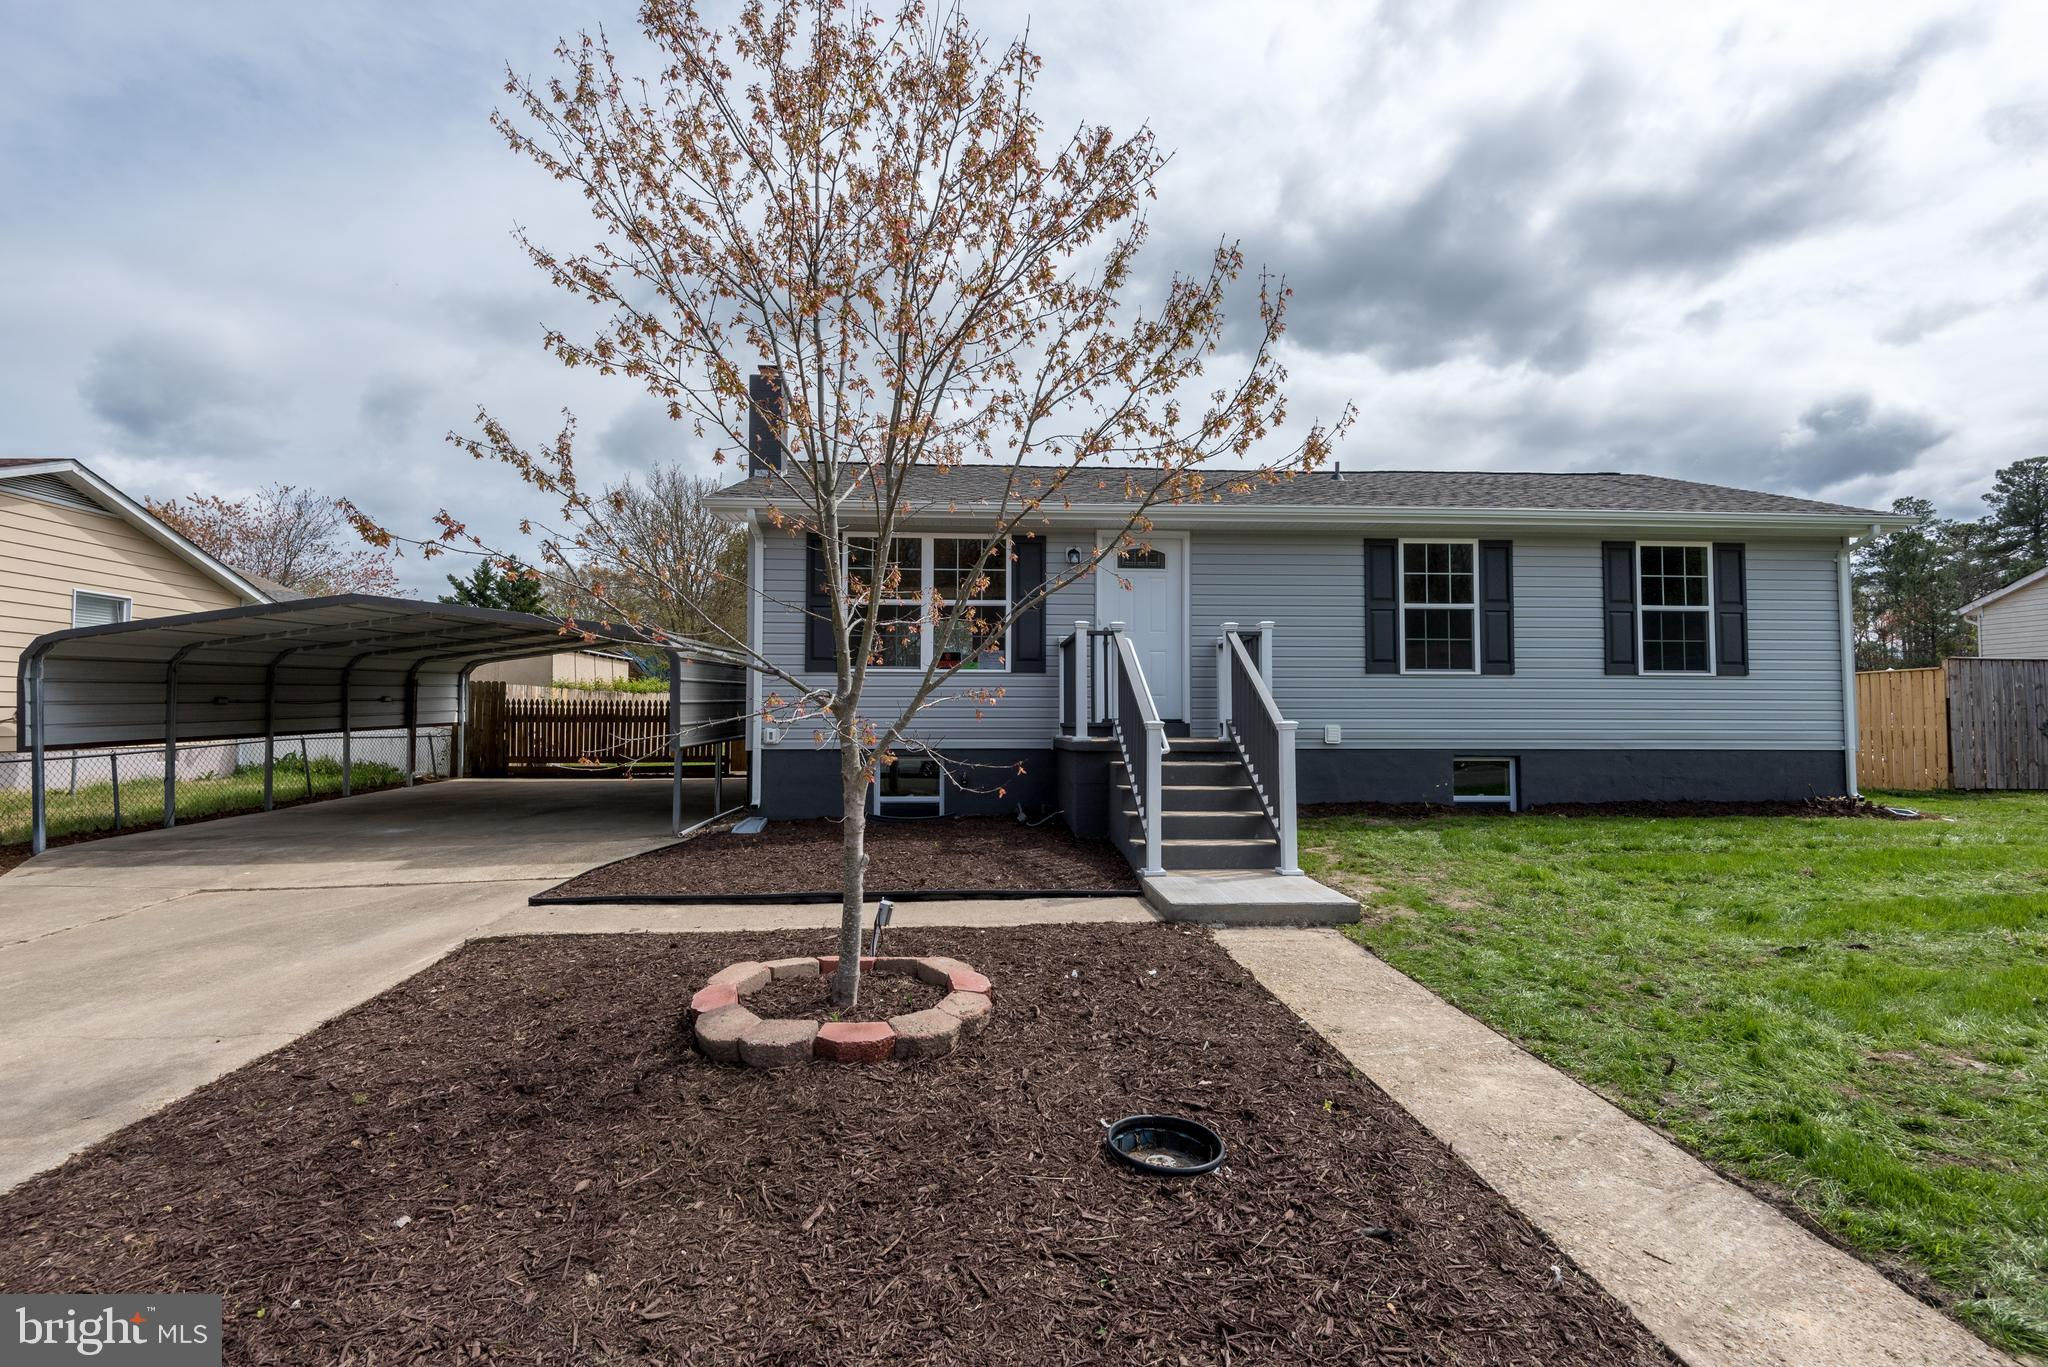 Completely renovated top to bottom with beautiful finishes by an experienced home builder! This home